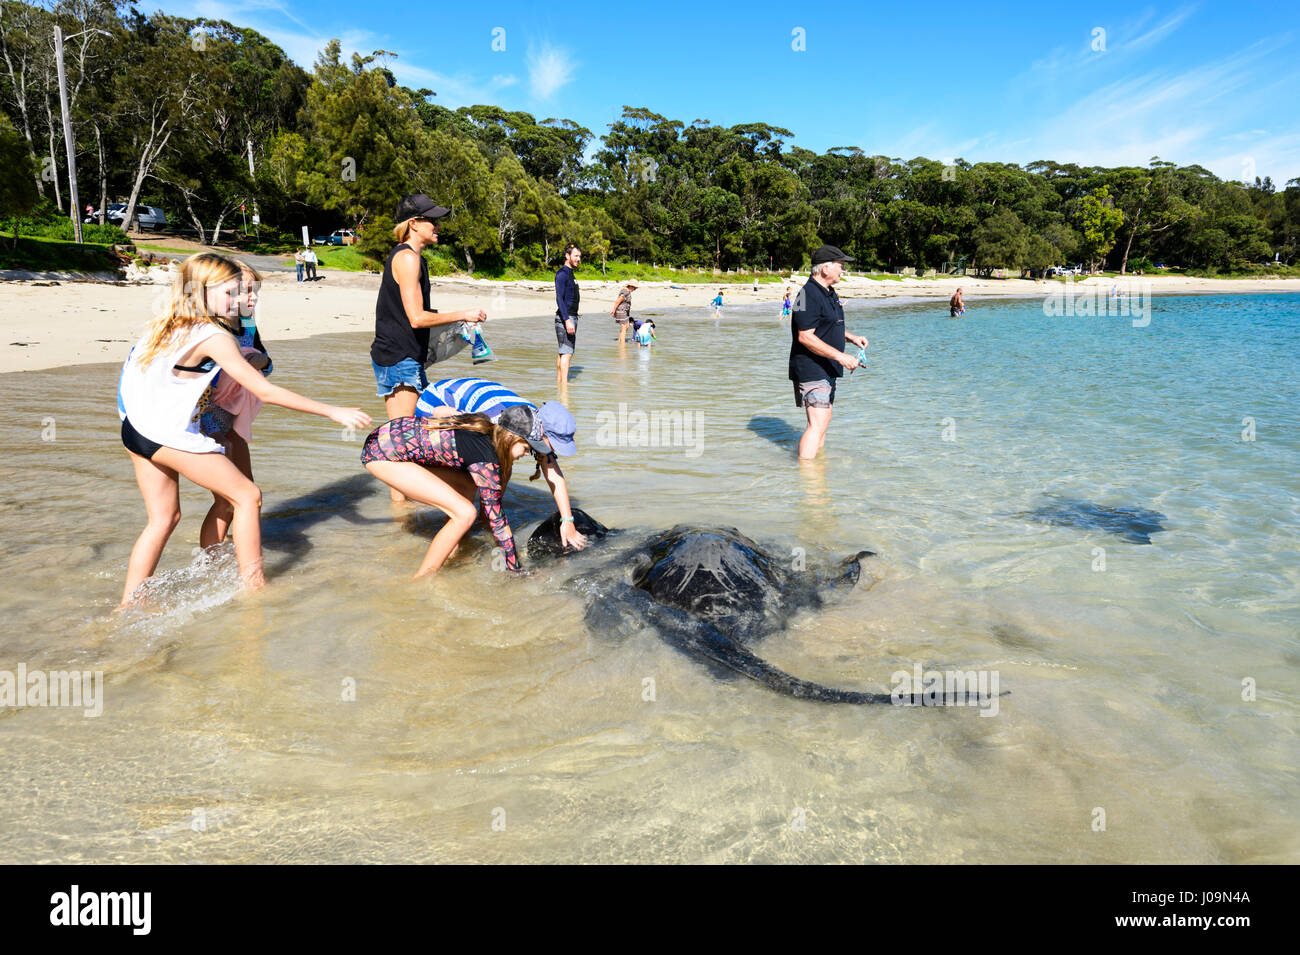 People feeding giant stingrays at Washerwoman's Beach, Bendalong Beach, Shoalhaven, South Coast, New South Wales, - Stock Image